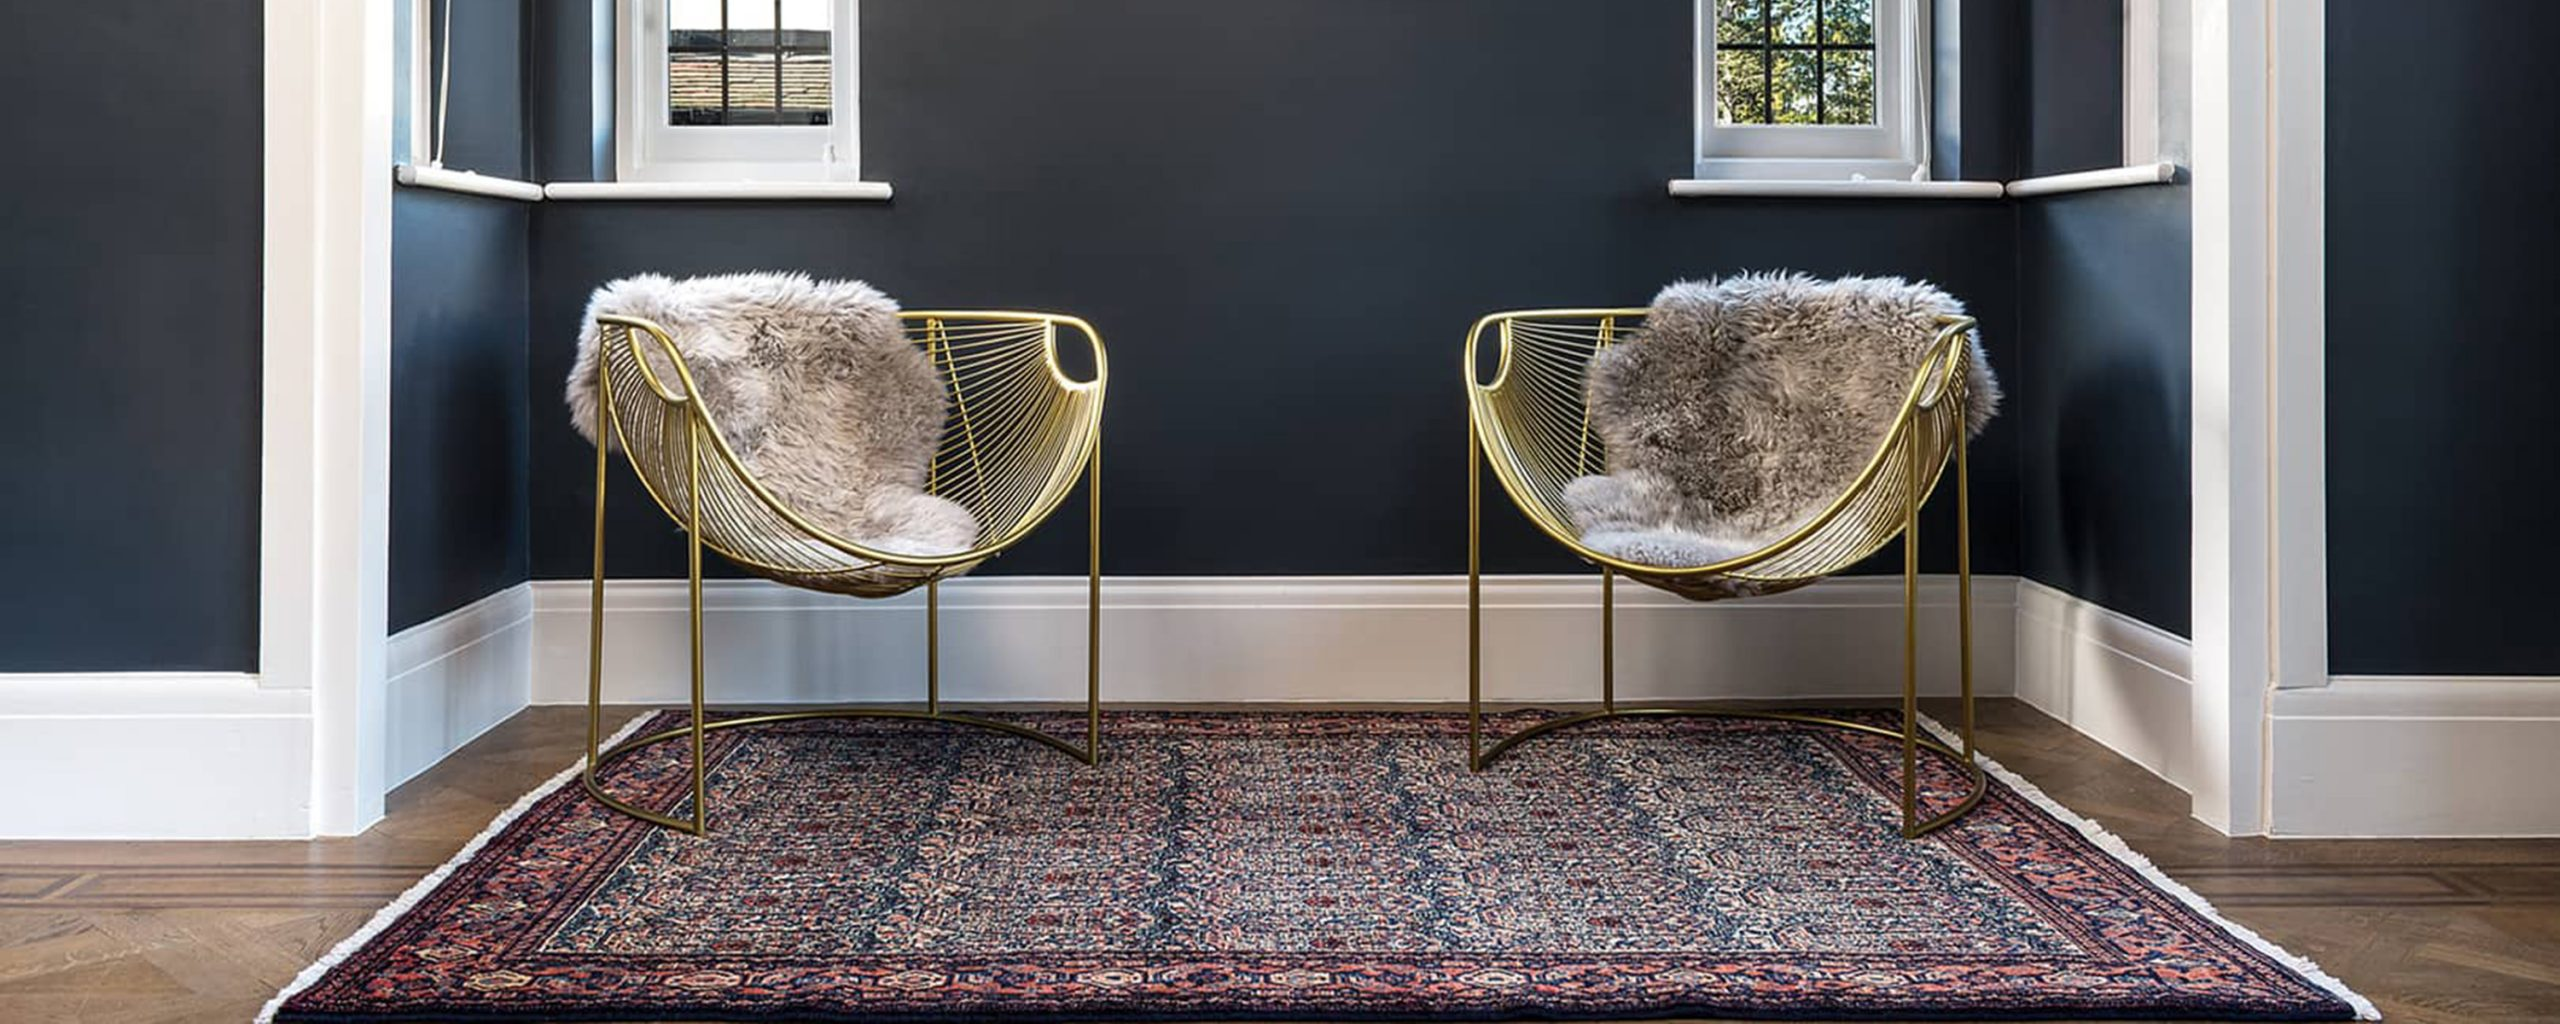 ALL YOU NEED TO KNOW ABOUT RUGS IN INTERIOR DESIGN